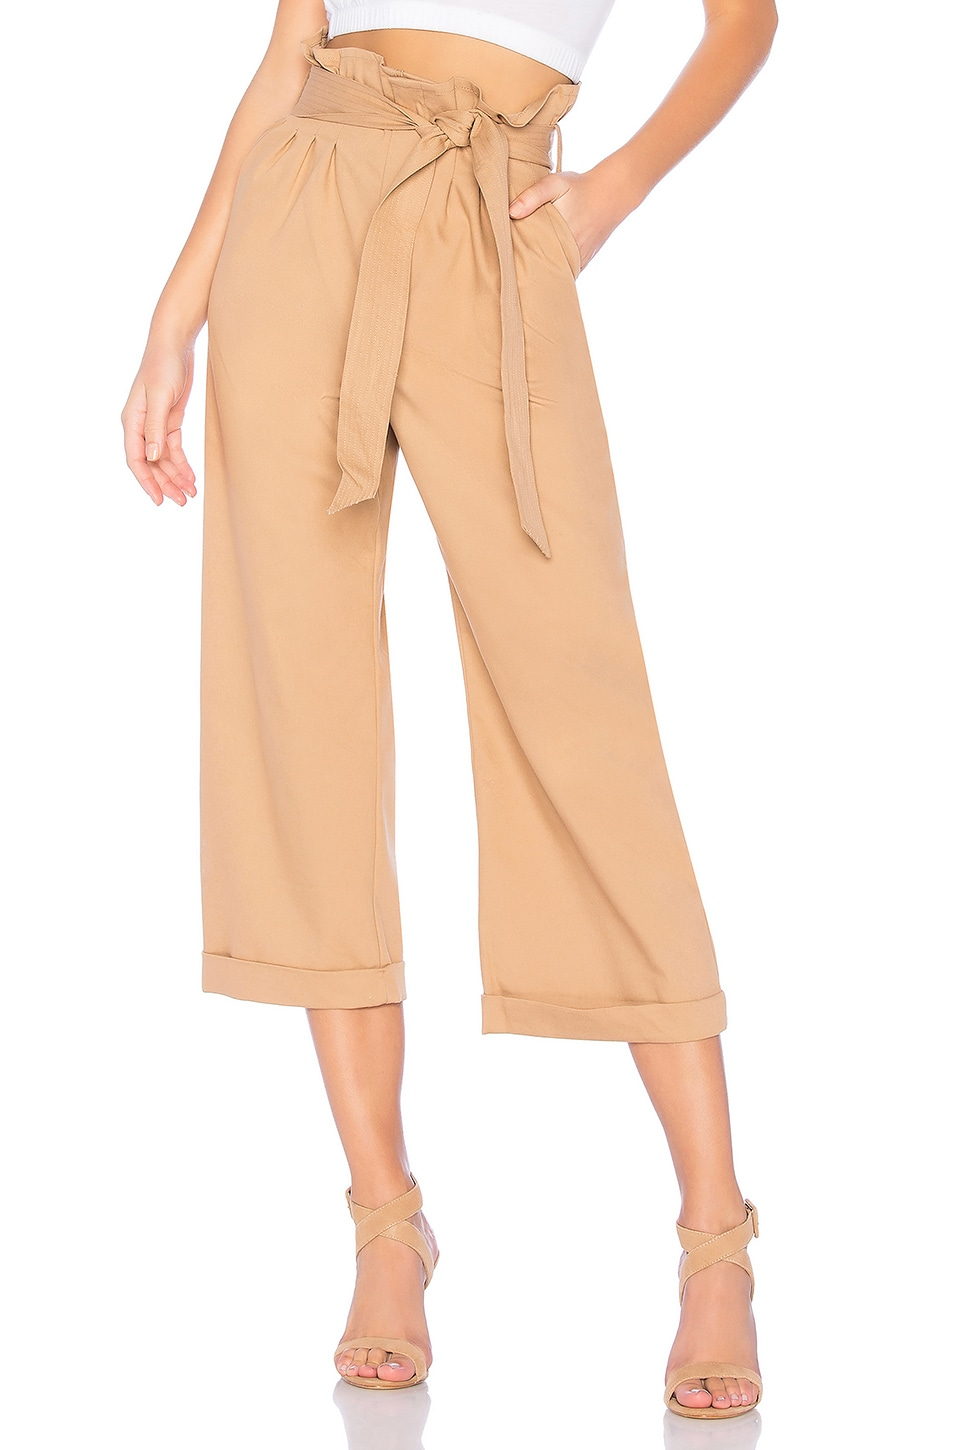 Bardot Sandy Crop Pant in Tan